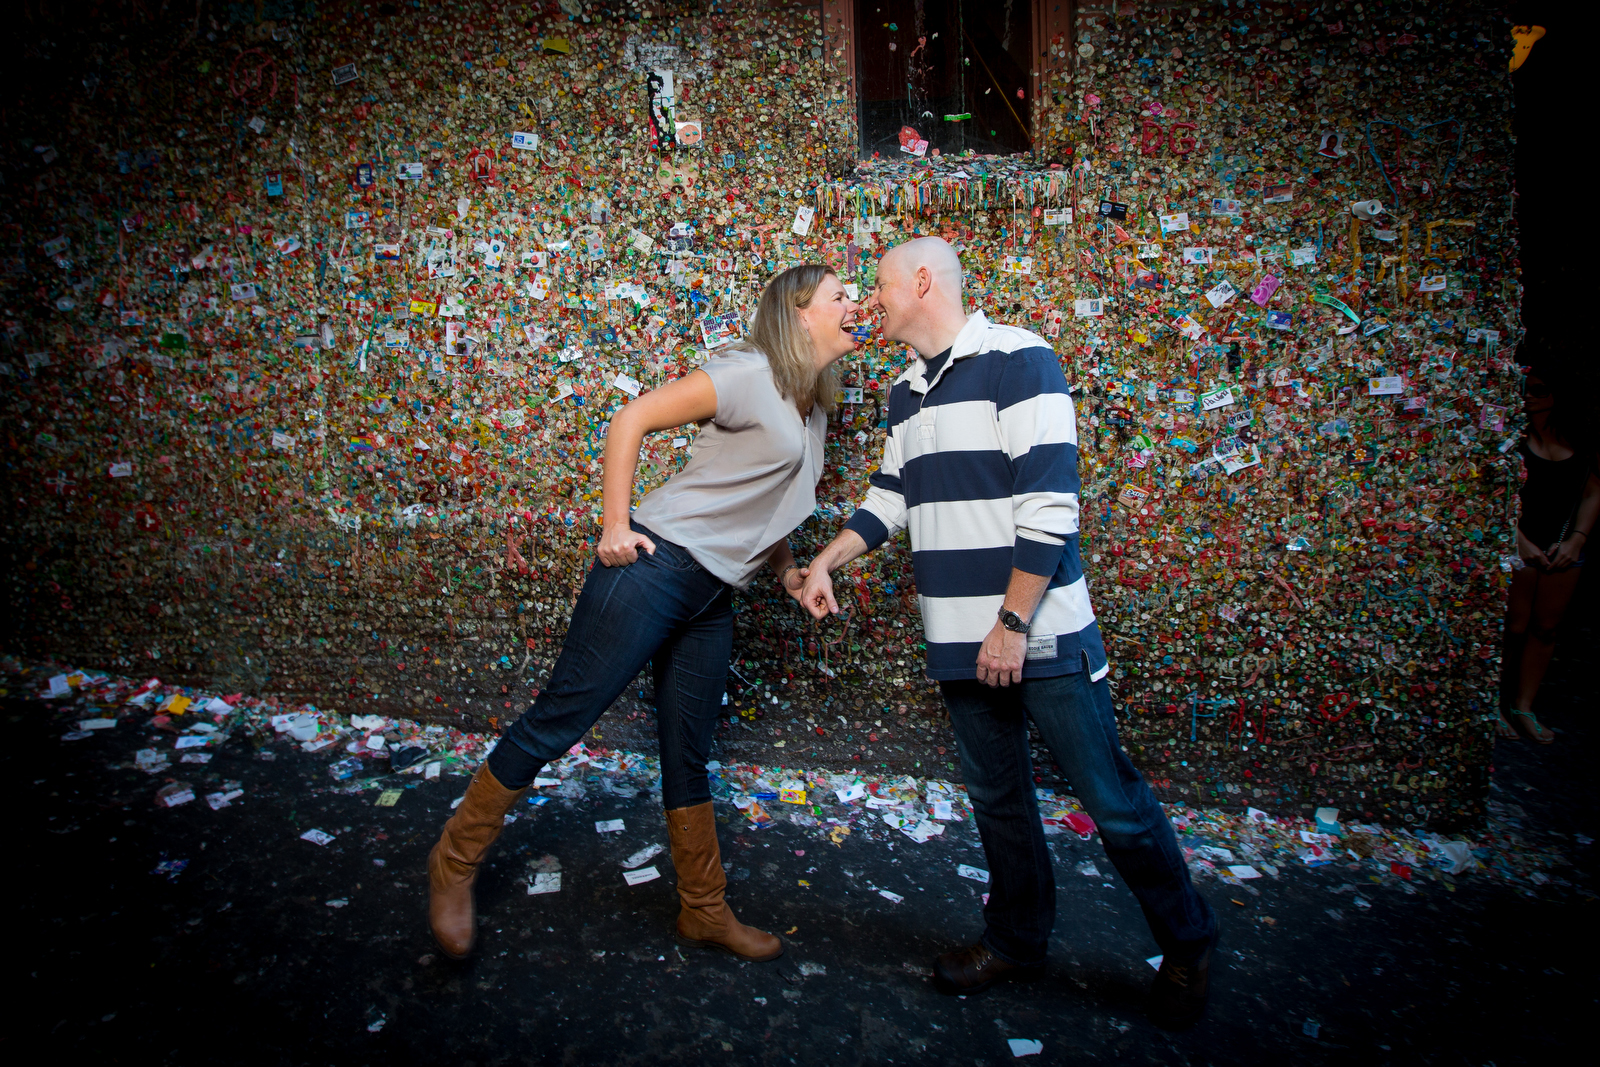 The Jennifer & Lincoln make a stop at the gum wall during their Seattle Pike Place Market engagement session. (Photography by Scott Eklund /Red Box Pictures)